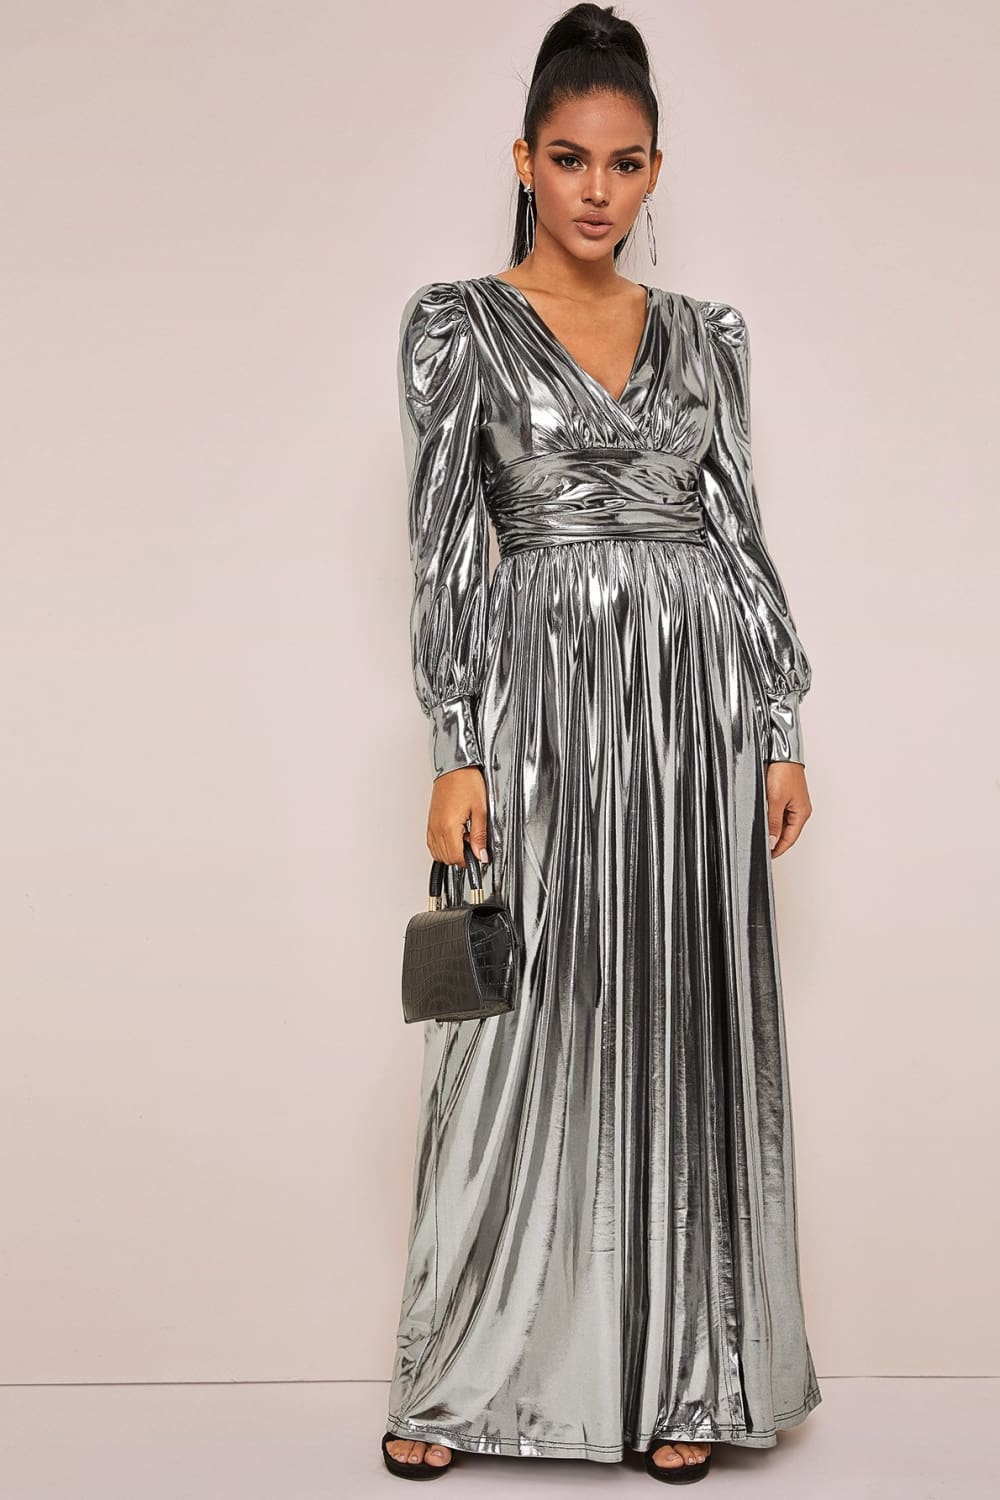 Ballroom Bound Metallic Wrap Dress - Dresses - Evan & Jane